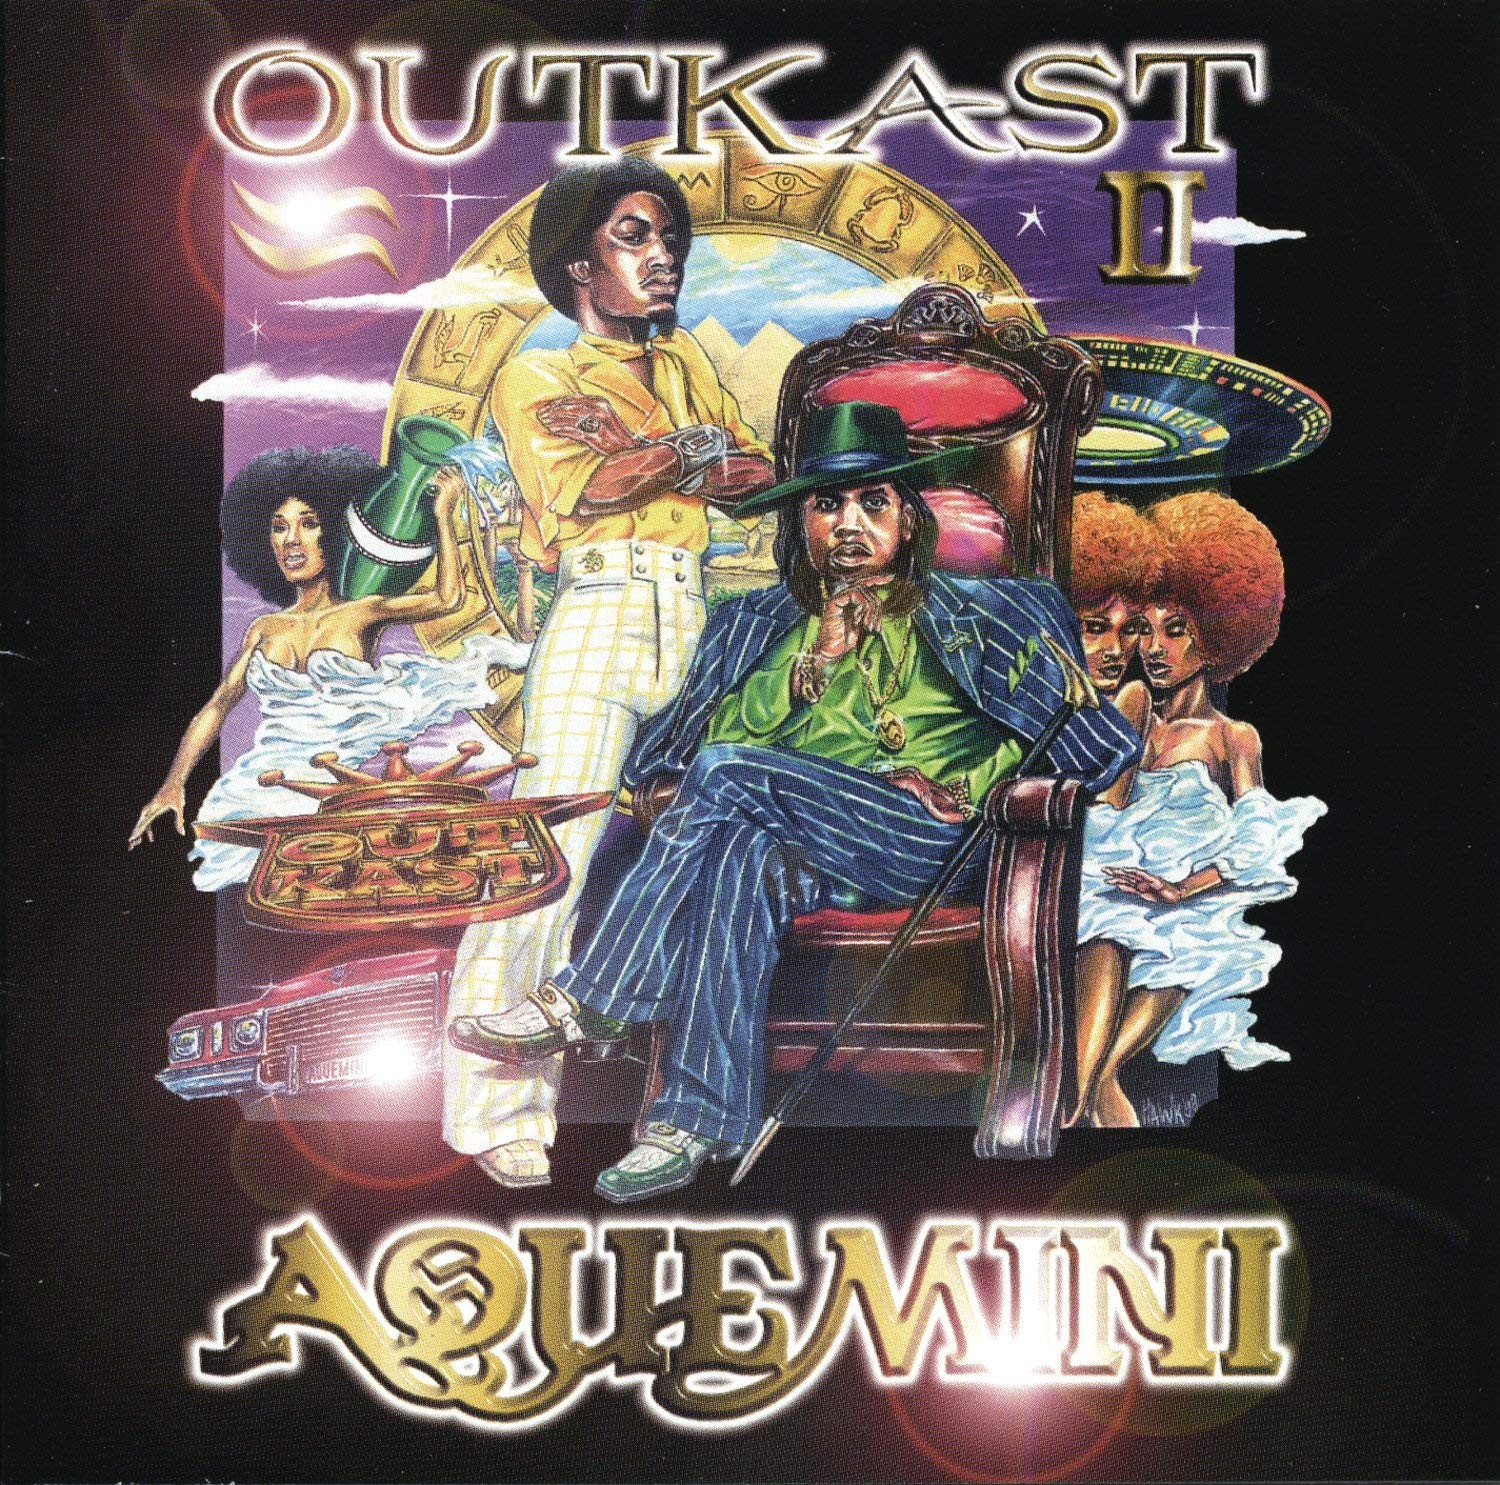 OutKast's 'Aquemini': One Of The Best Albums Ever Turns 20 - Stereogum